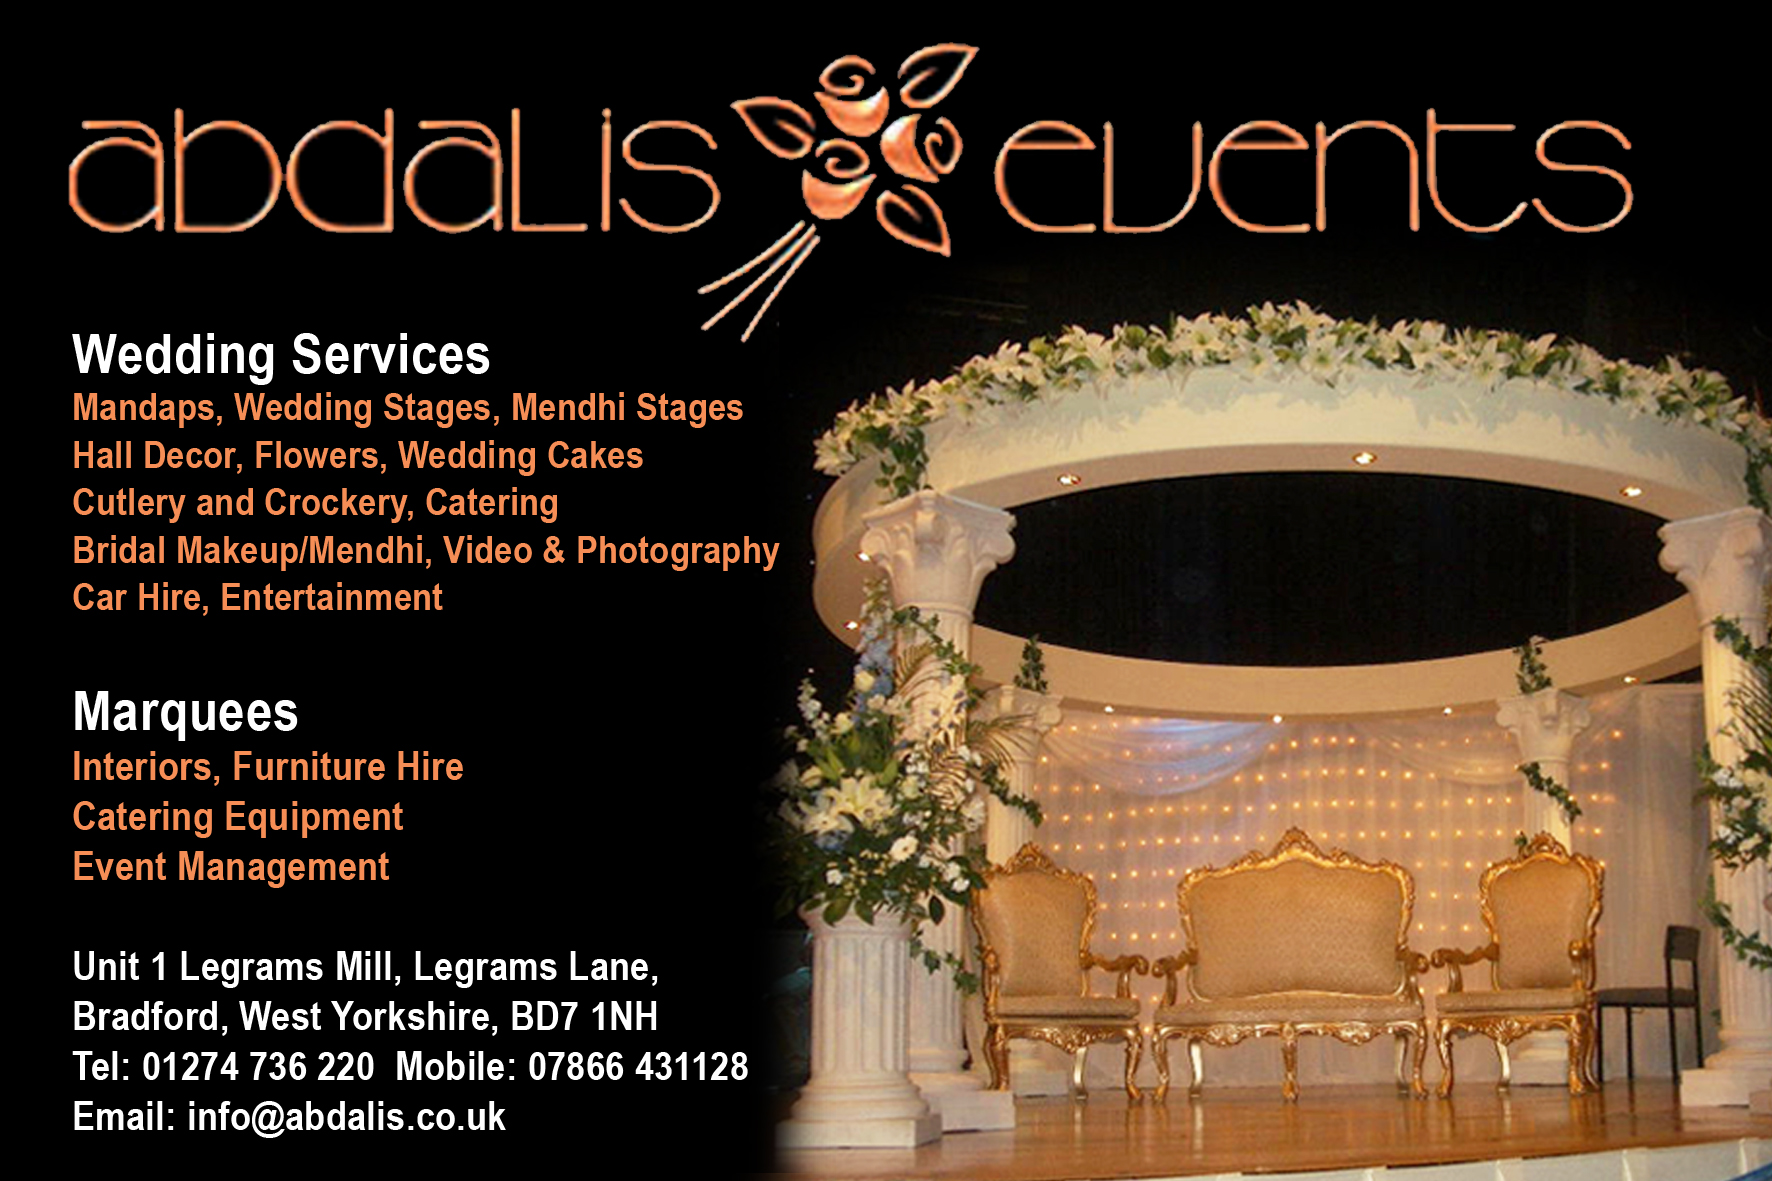 Abdalis Events